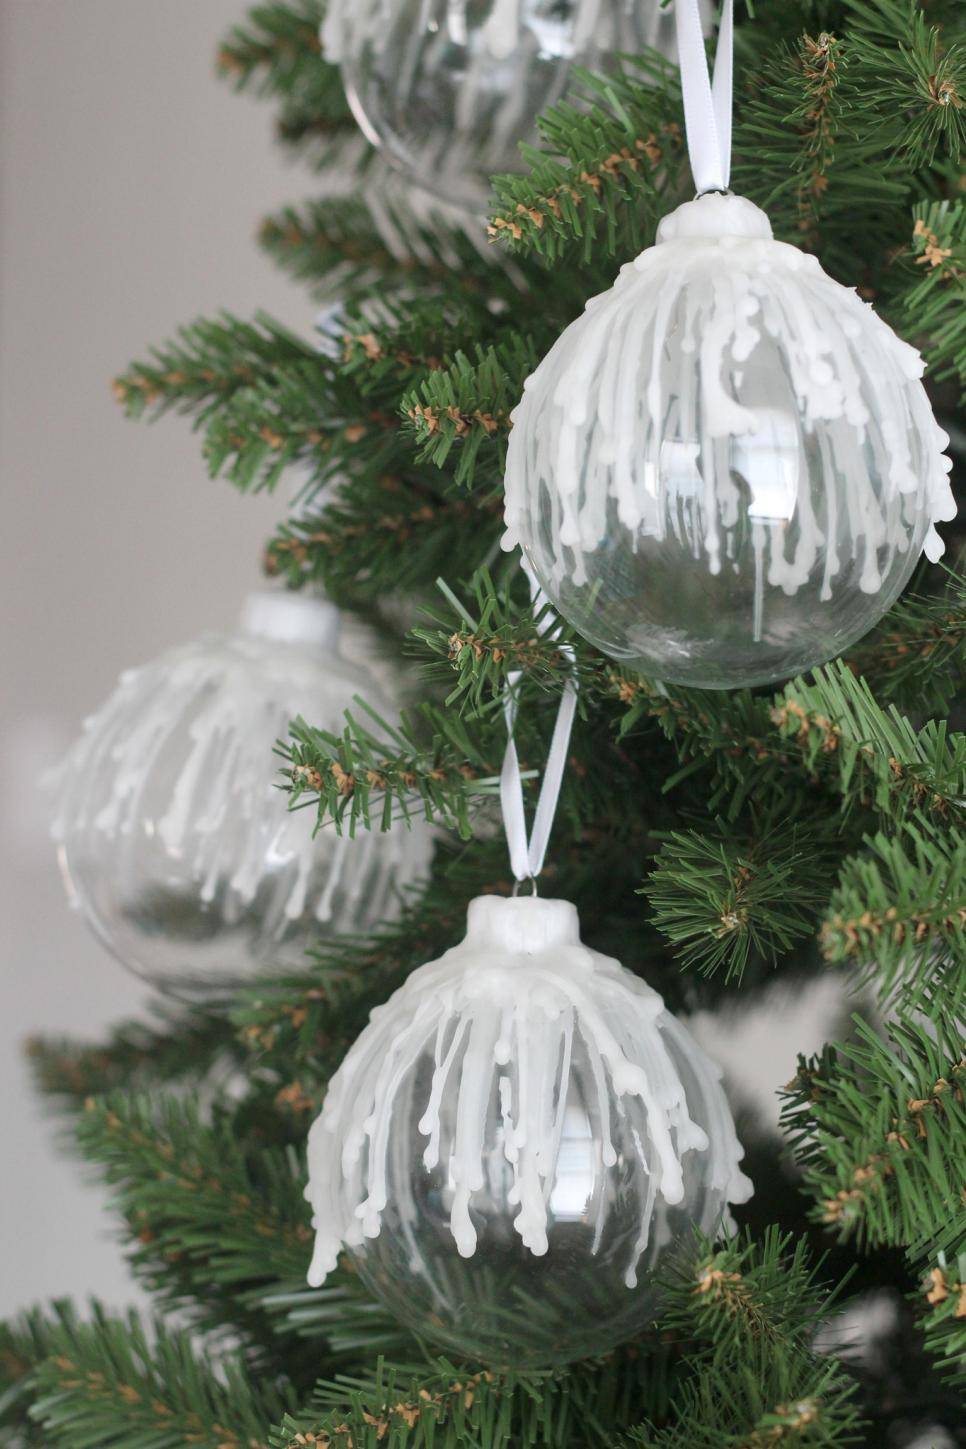 10 fun ways to dress up a glass ornament hgtv for How to design a christmas ornament